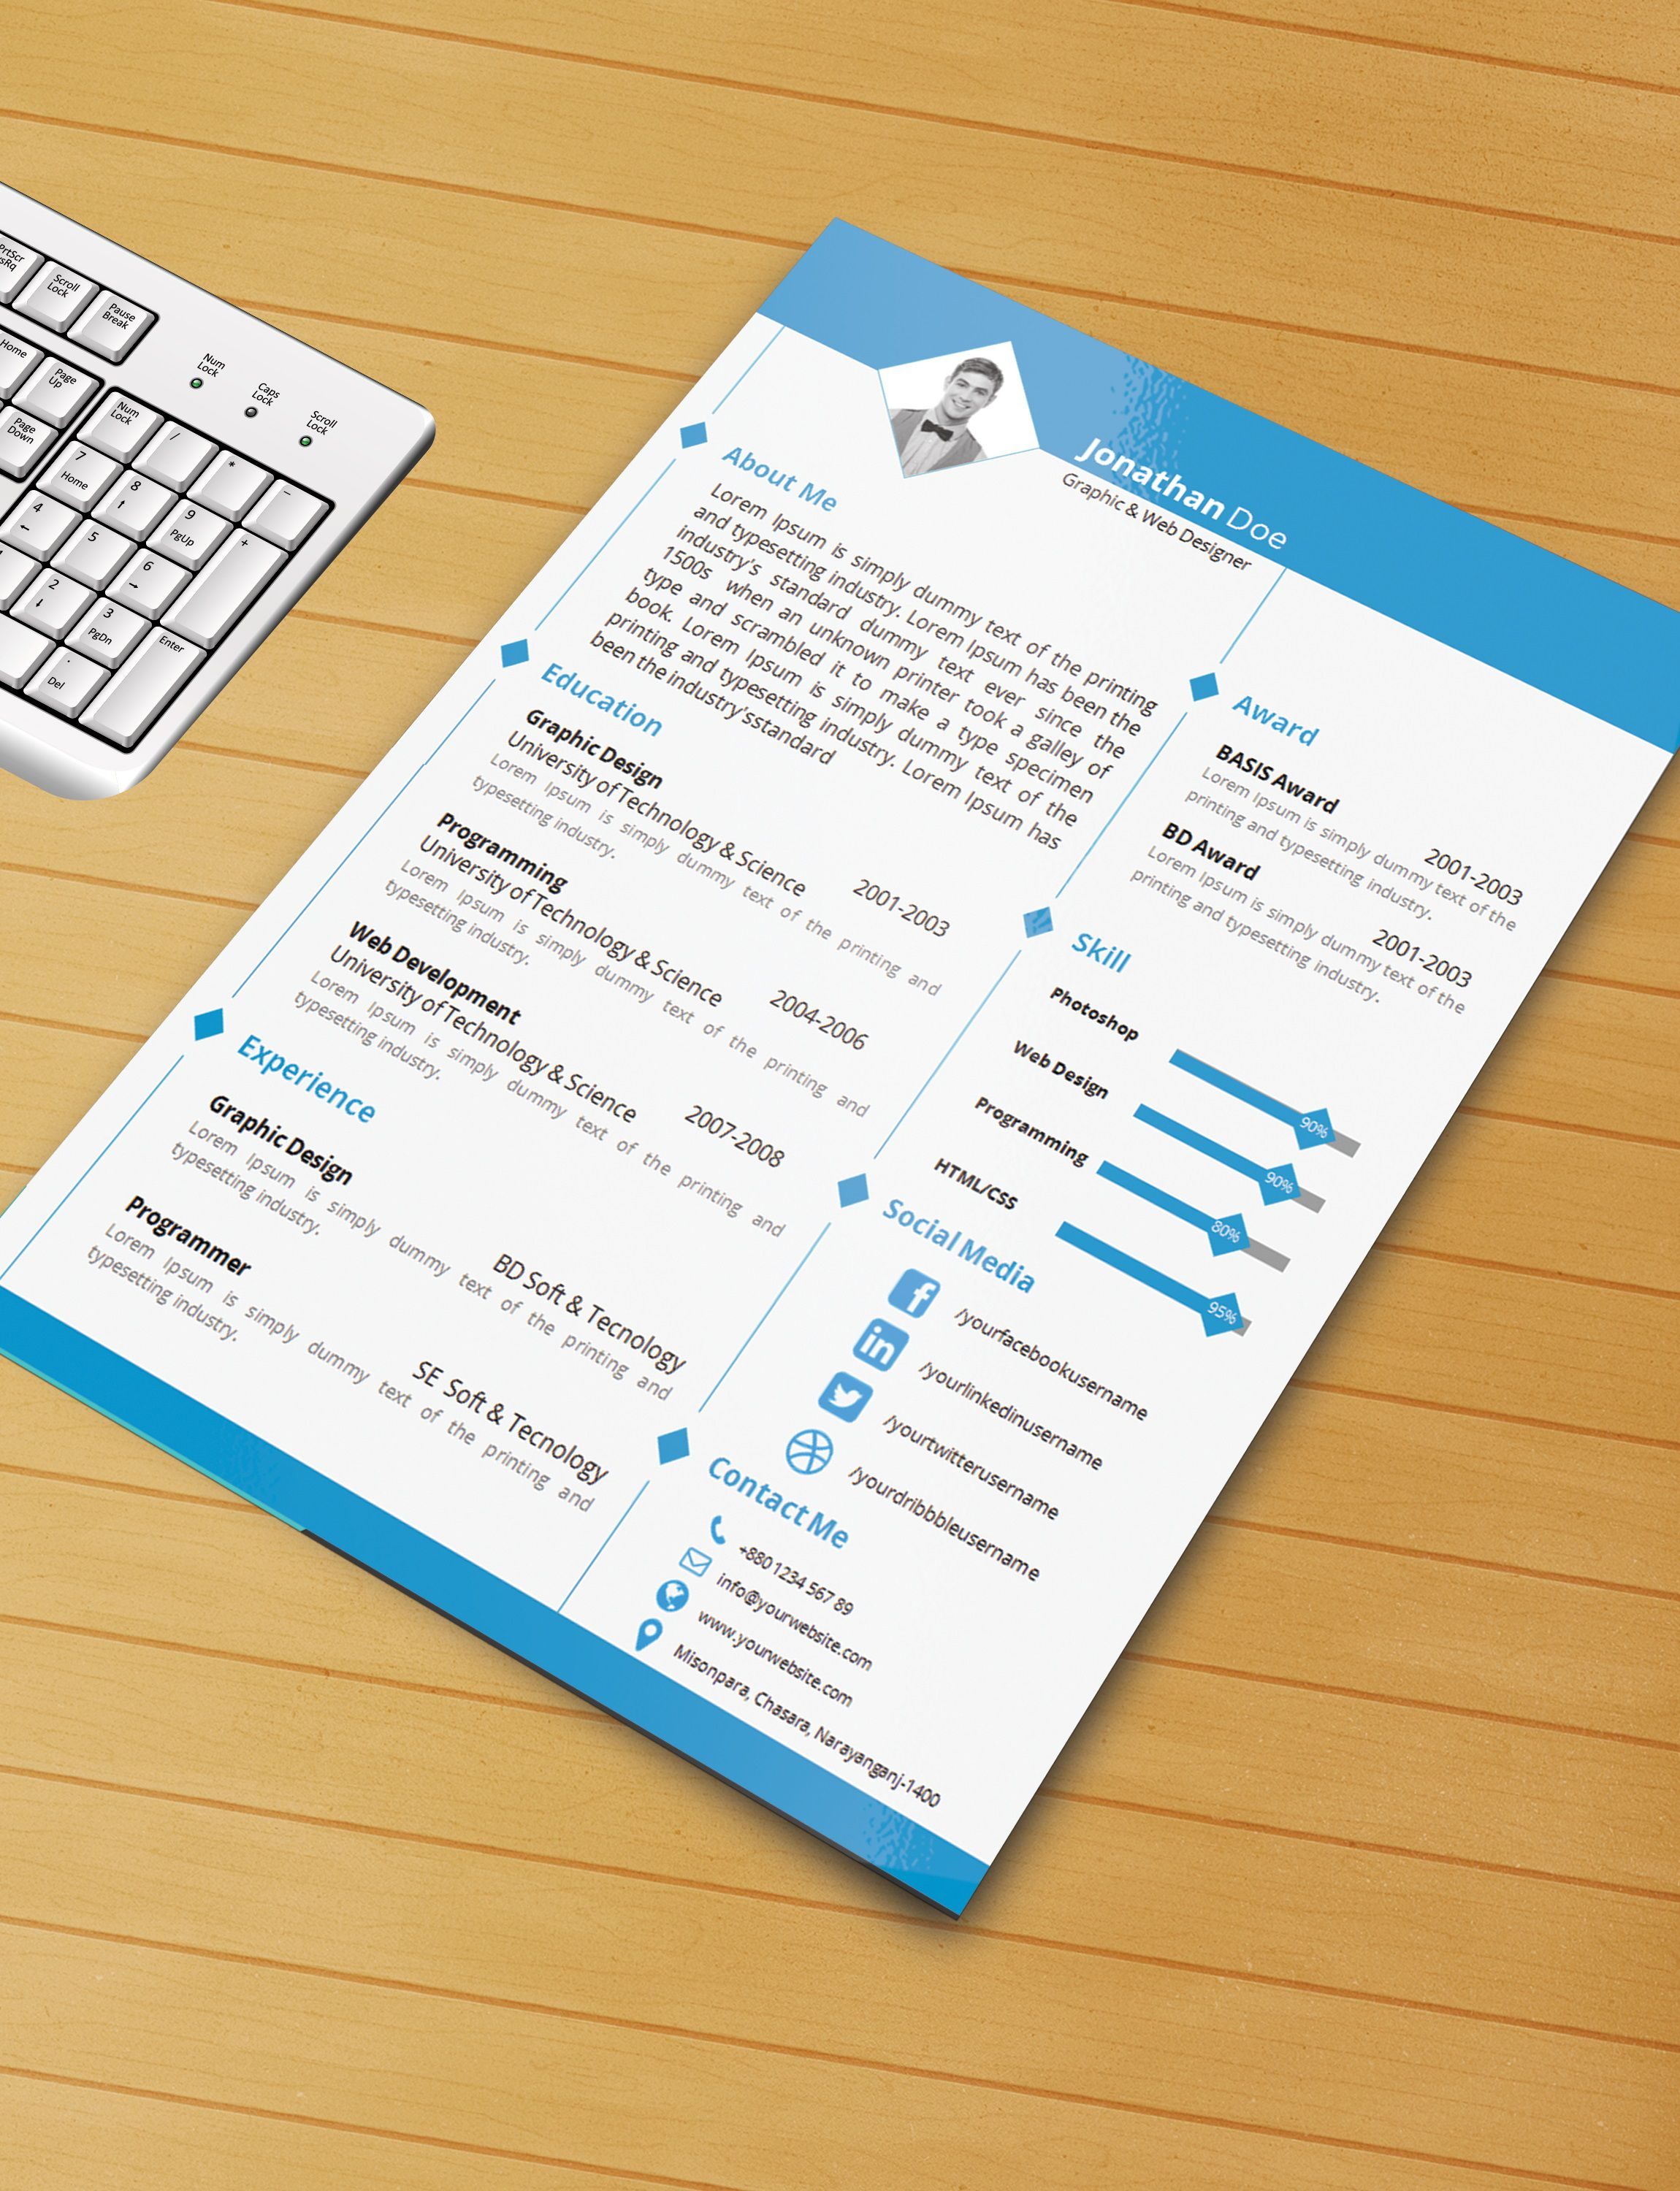 002 Frightening Microsoft Office Free Template Sample  Excel Download M PowerpointFull